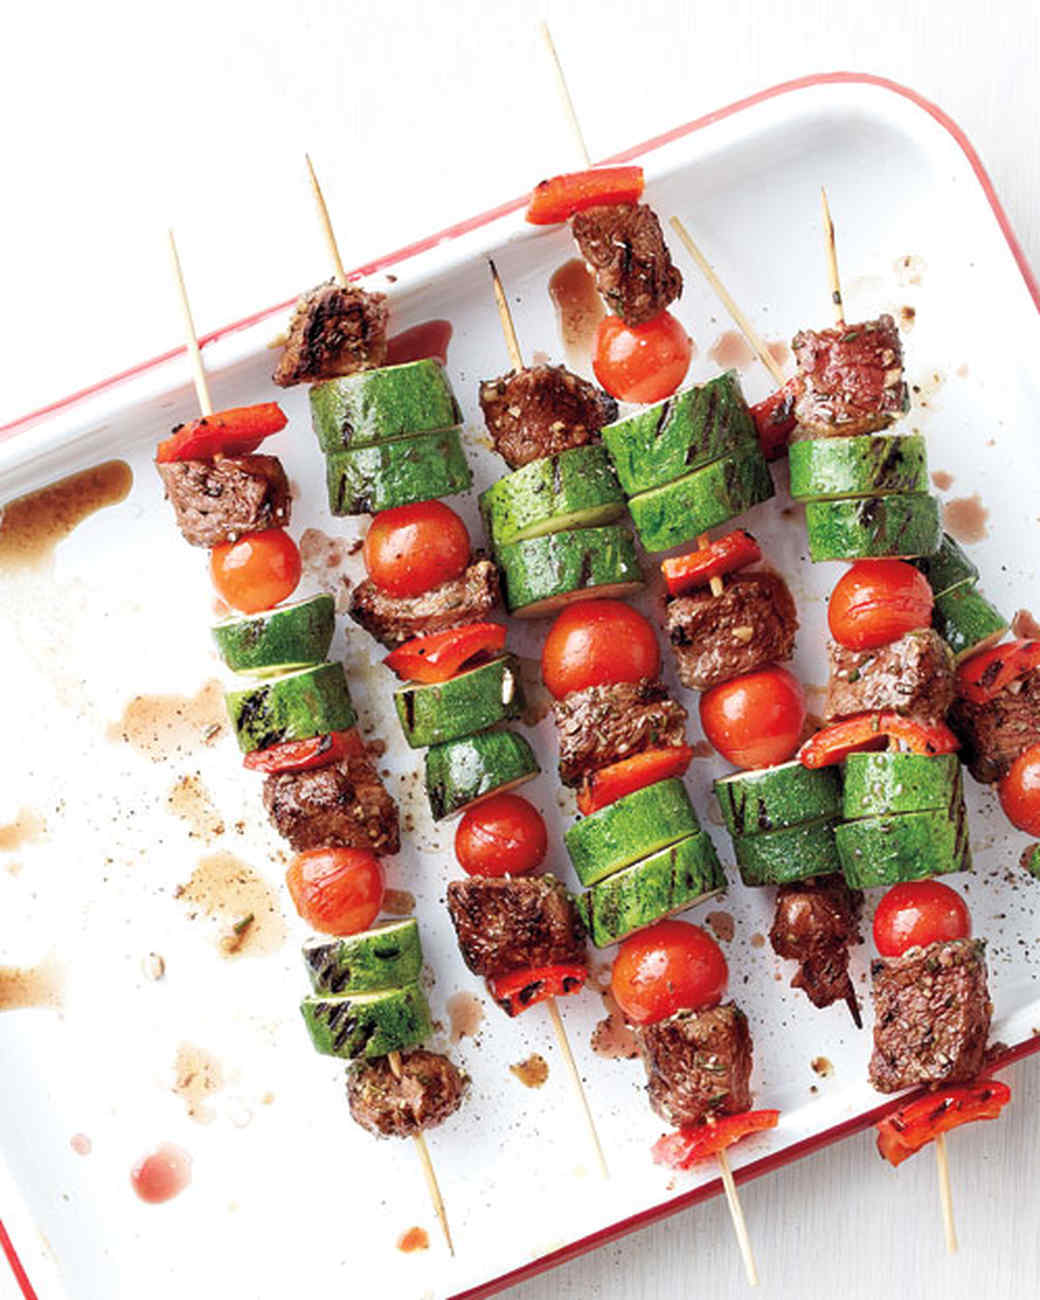 Emeril's Beef and Vegetable Kebabs